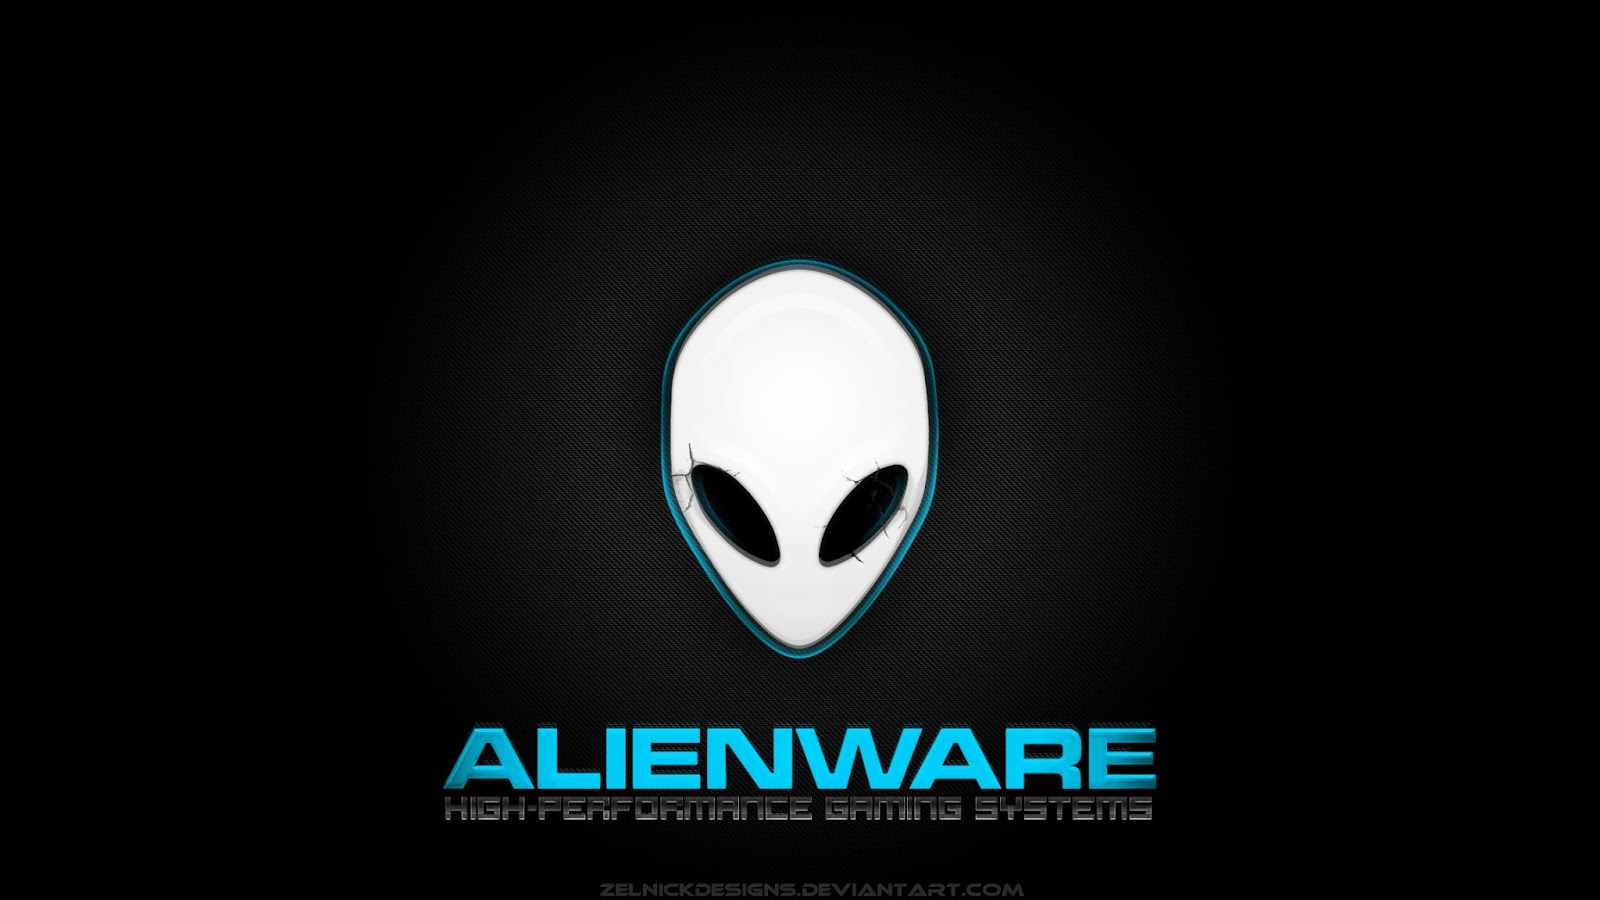 17+ ideas about Alienware Wallpaper on Pinterest